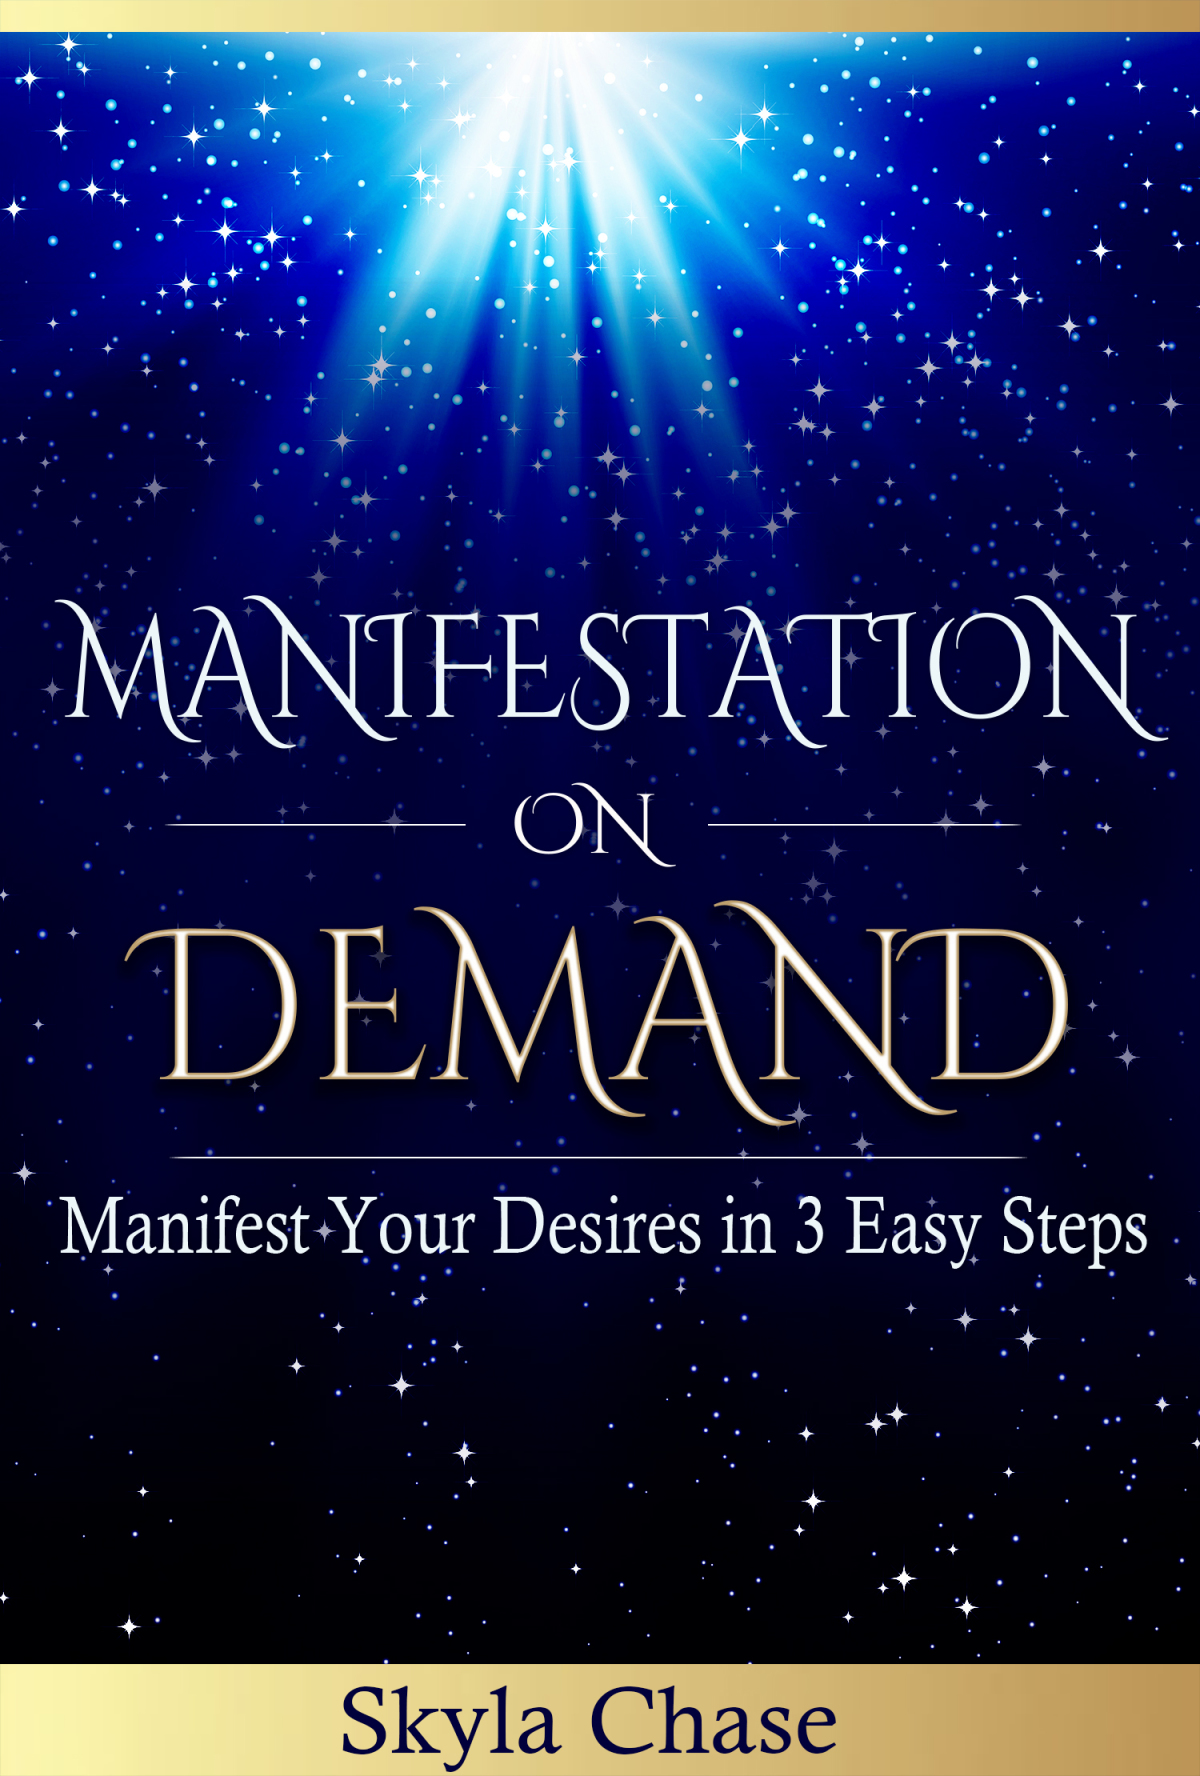 Manifestation On Demand Ebook Cover